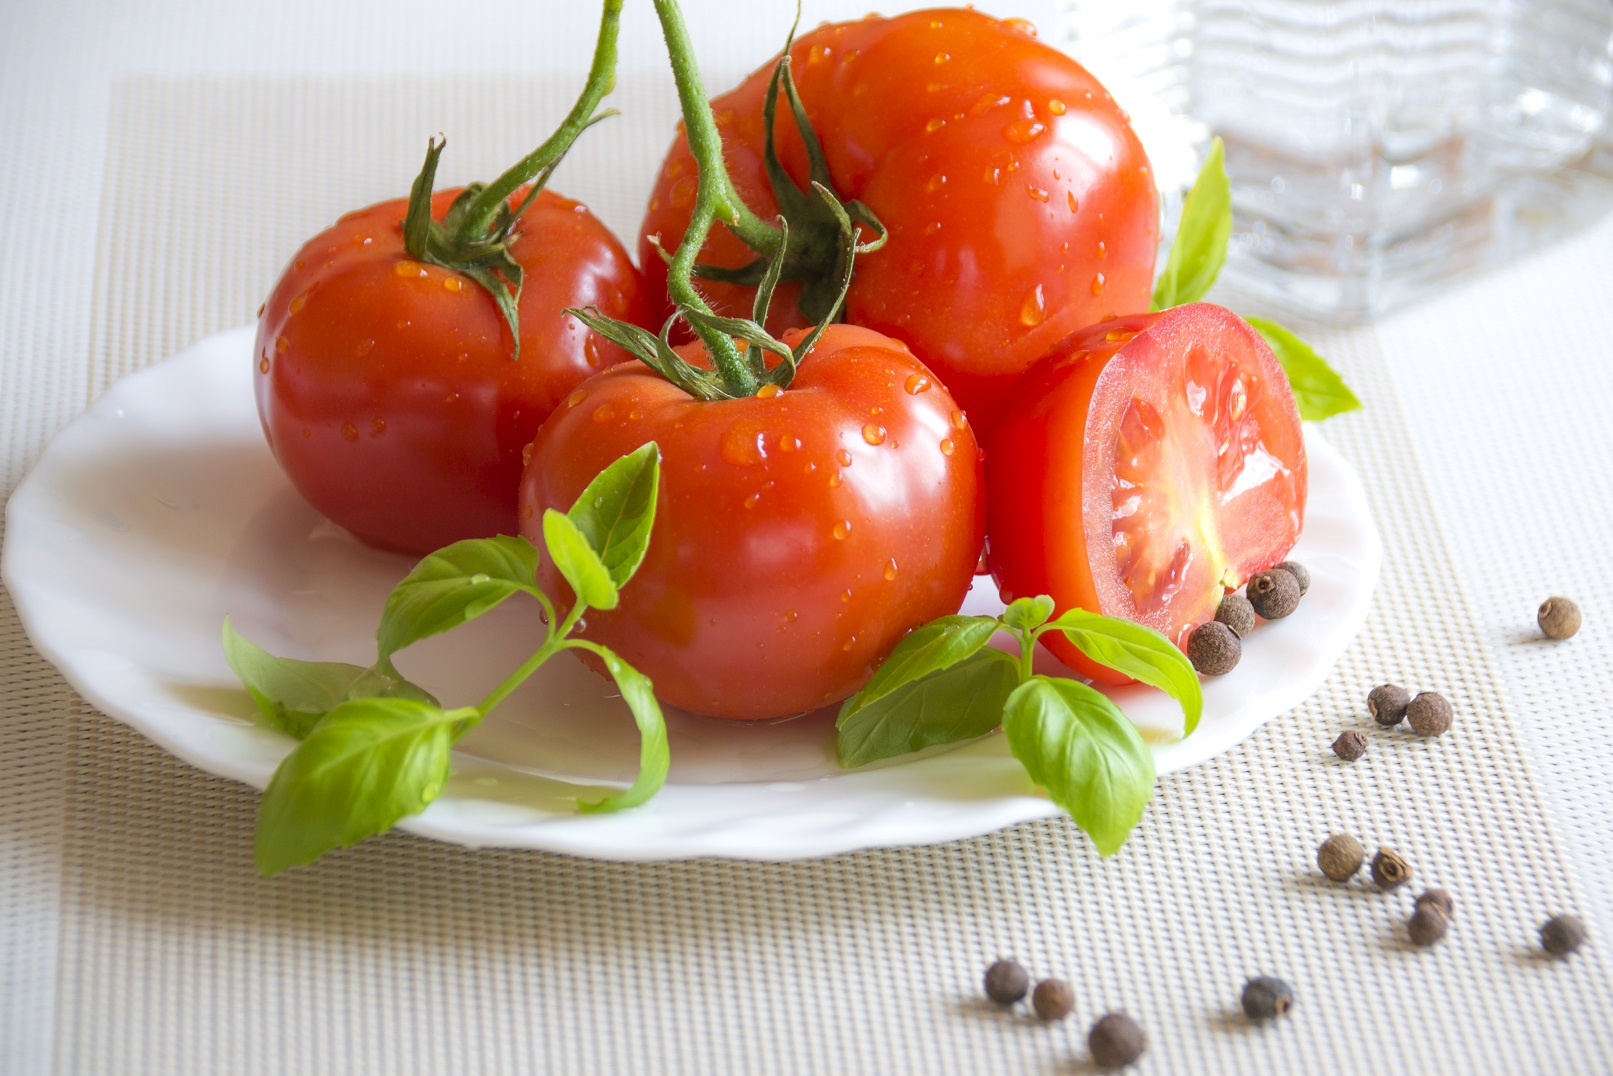 fresh and juicy tomatoes with basil leaves